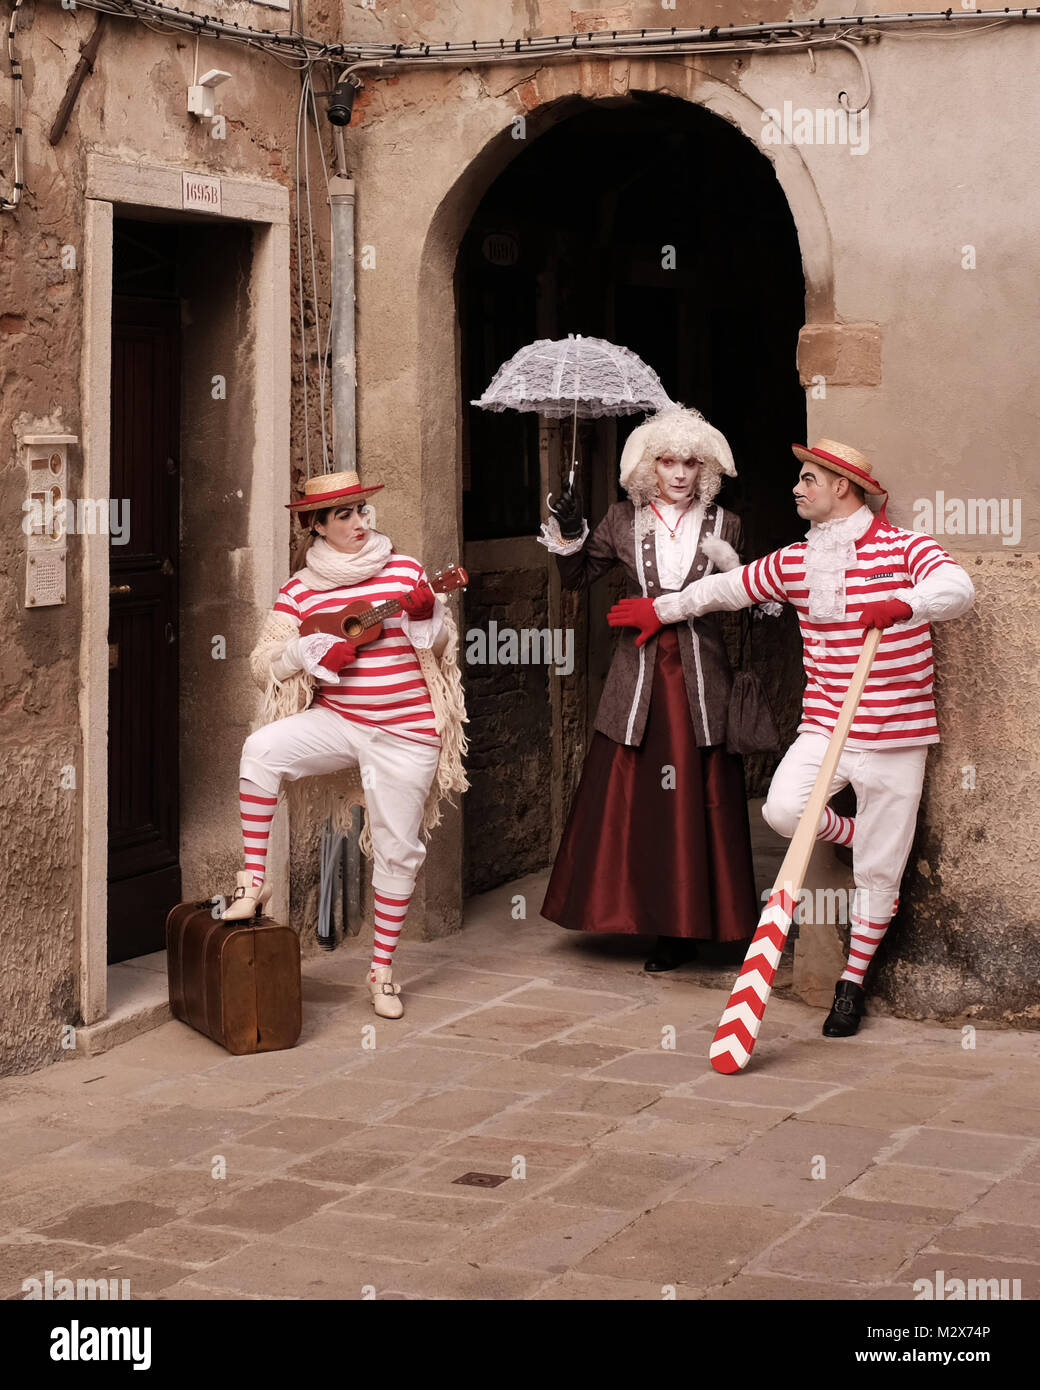 Street artists' performance in the street during the days of annual carnival - Stock Image